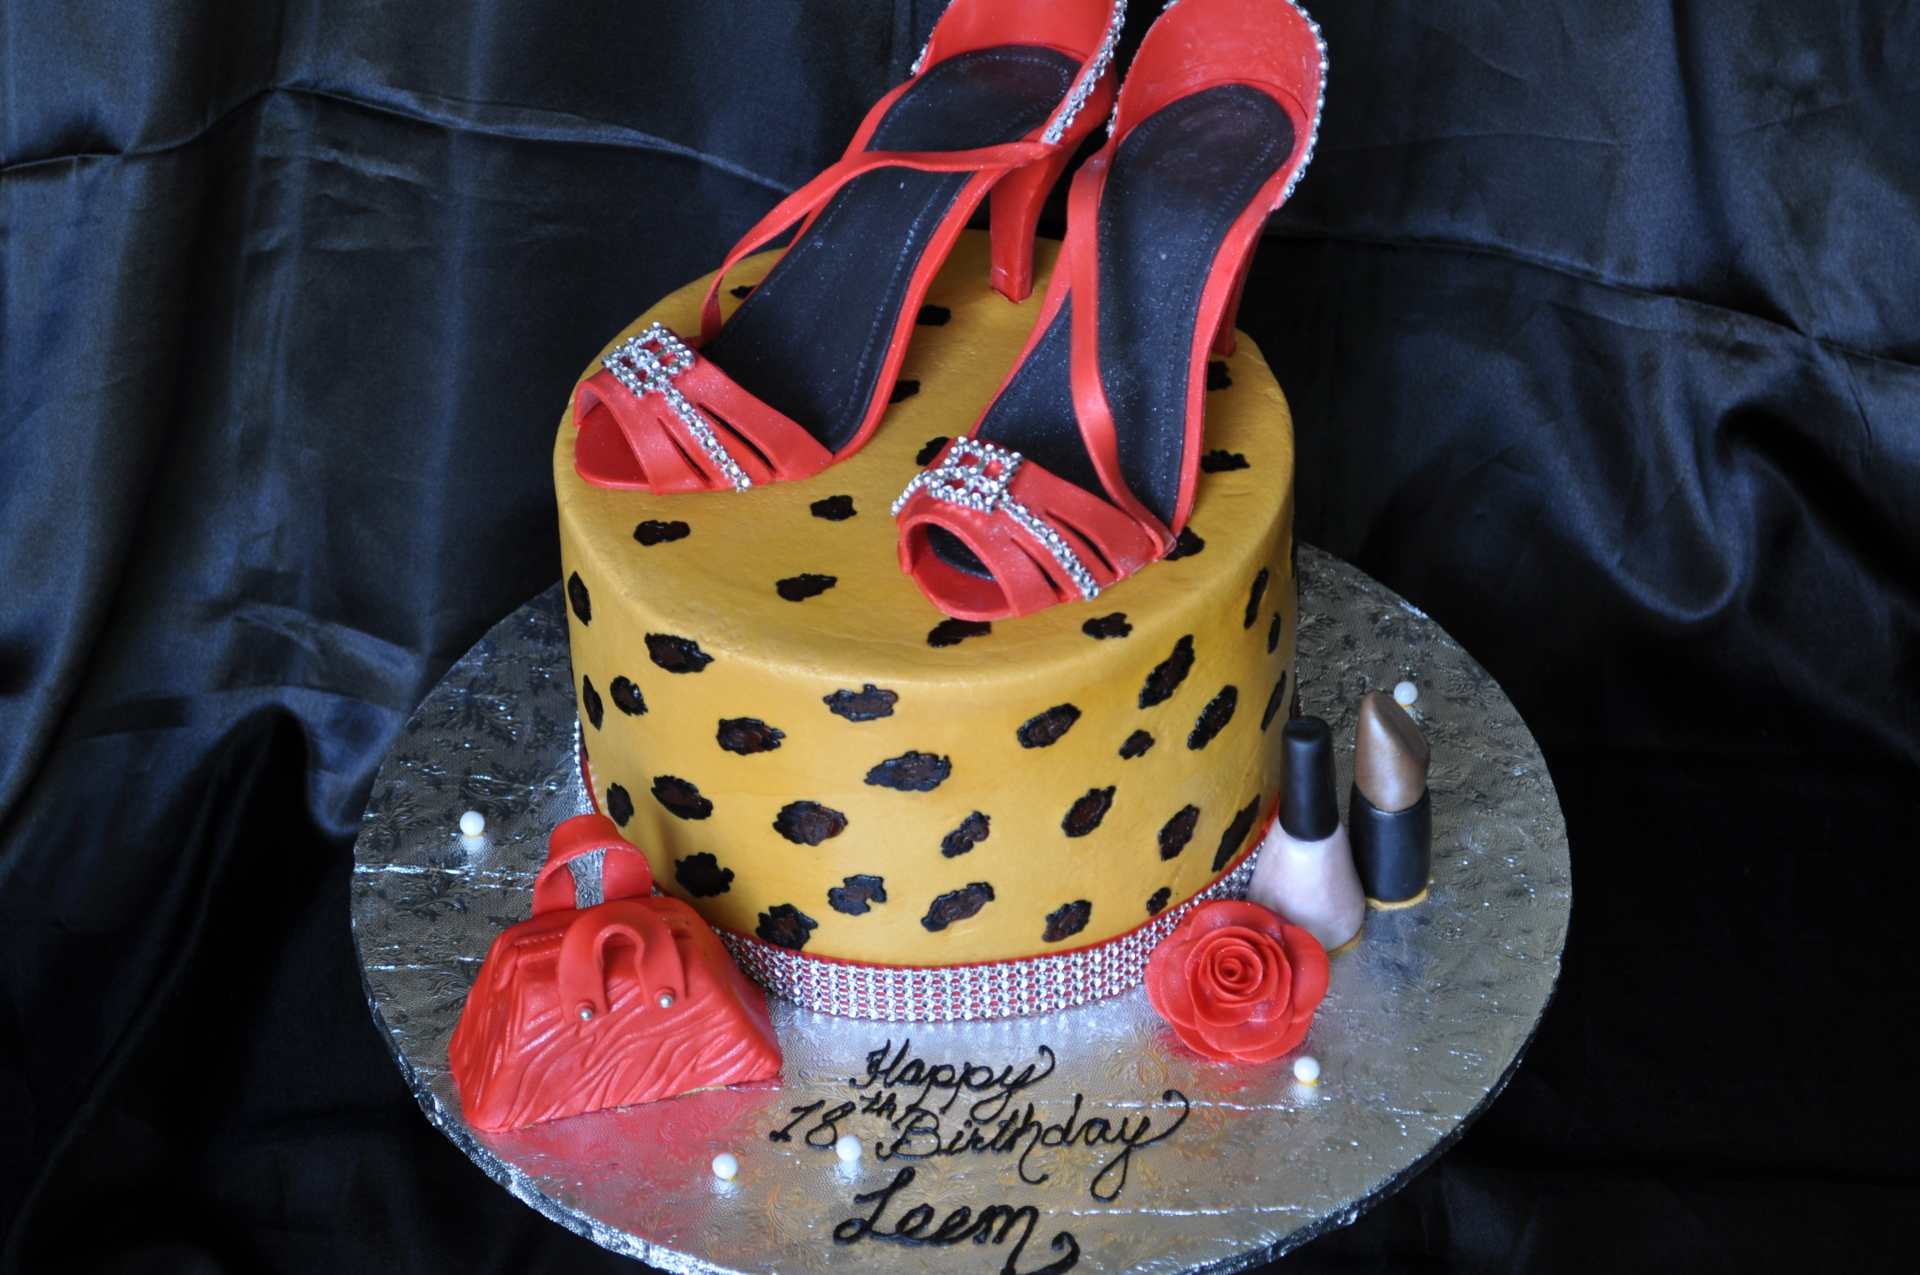 Leopard print with red heels